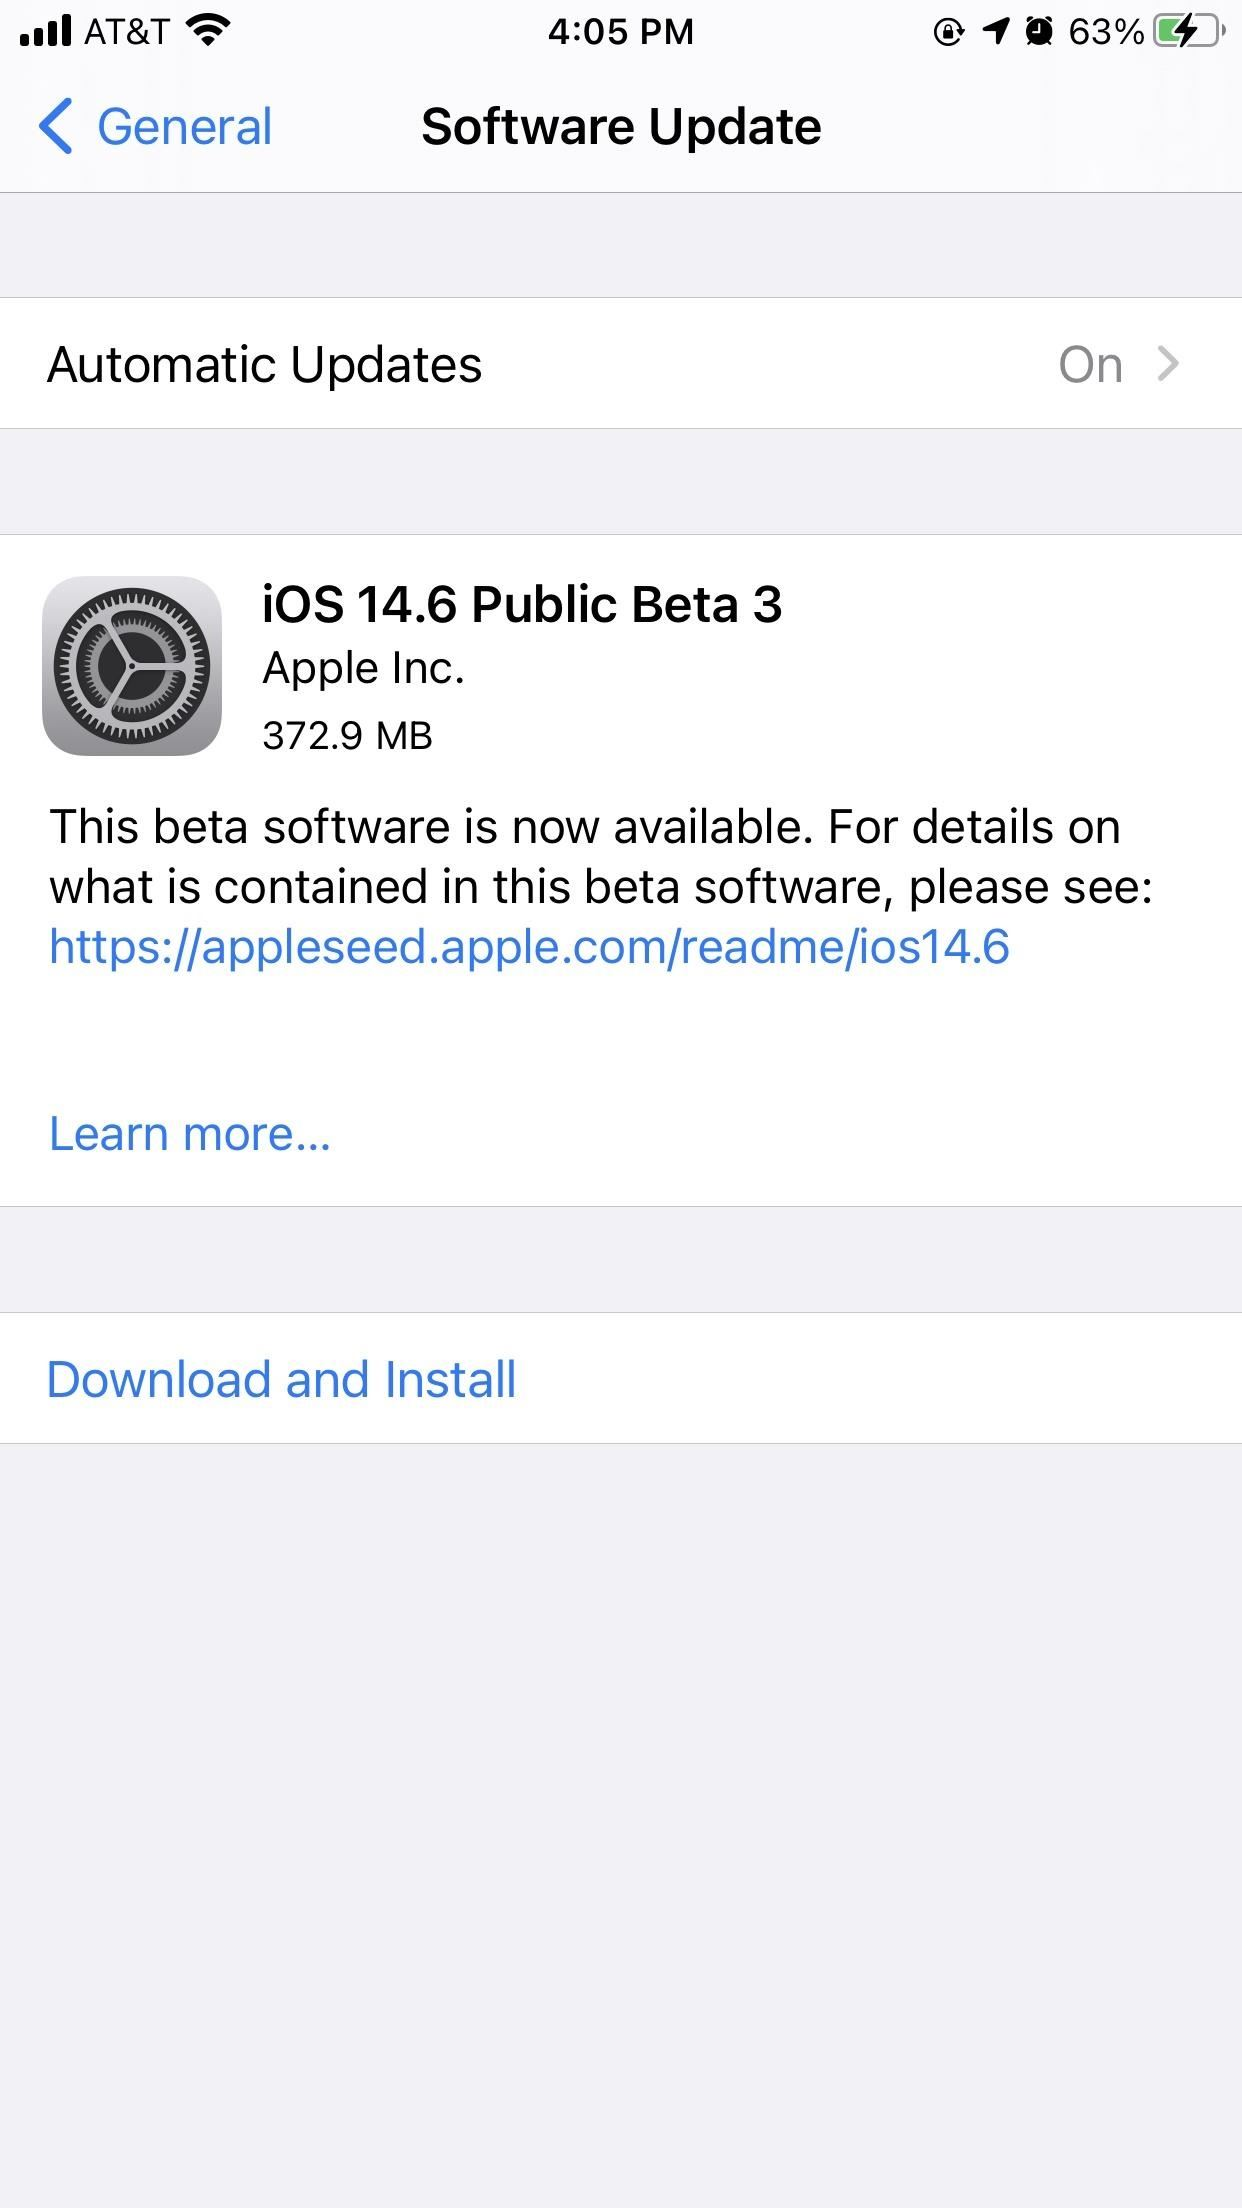 Apple Releases iOS 14.6 Beta 3 for iPhone, Adds Fix for Performance Bug